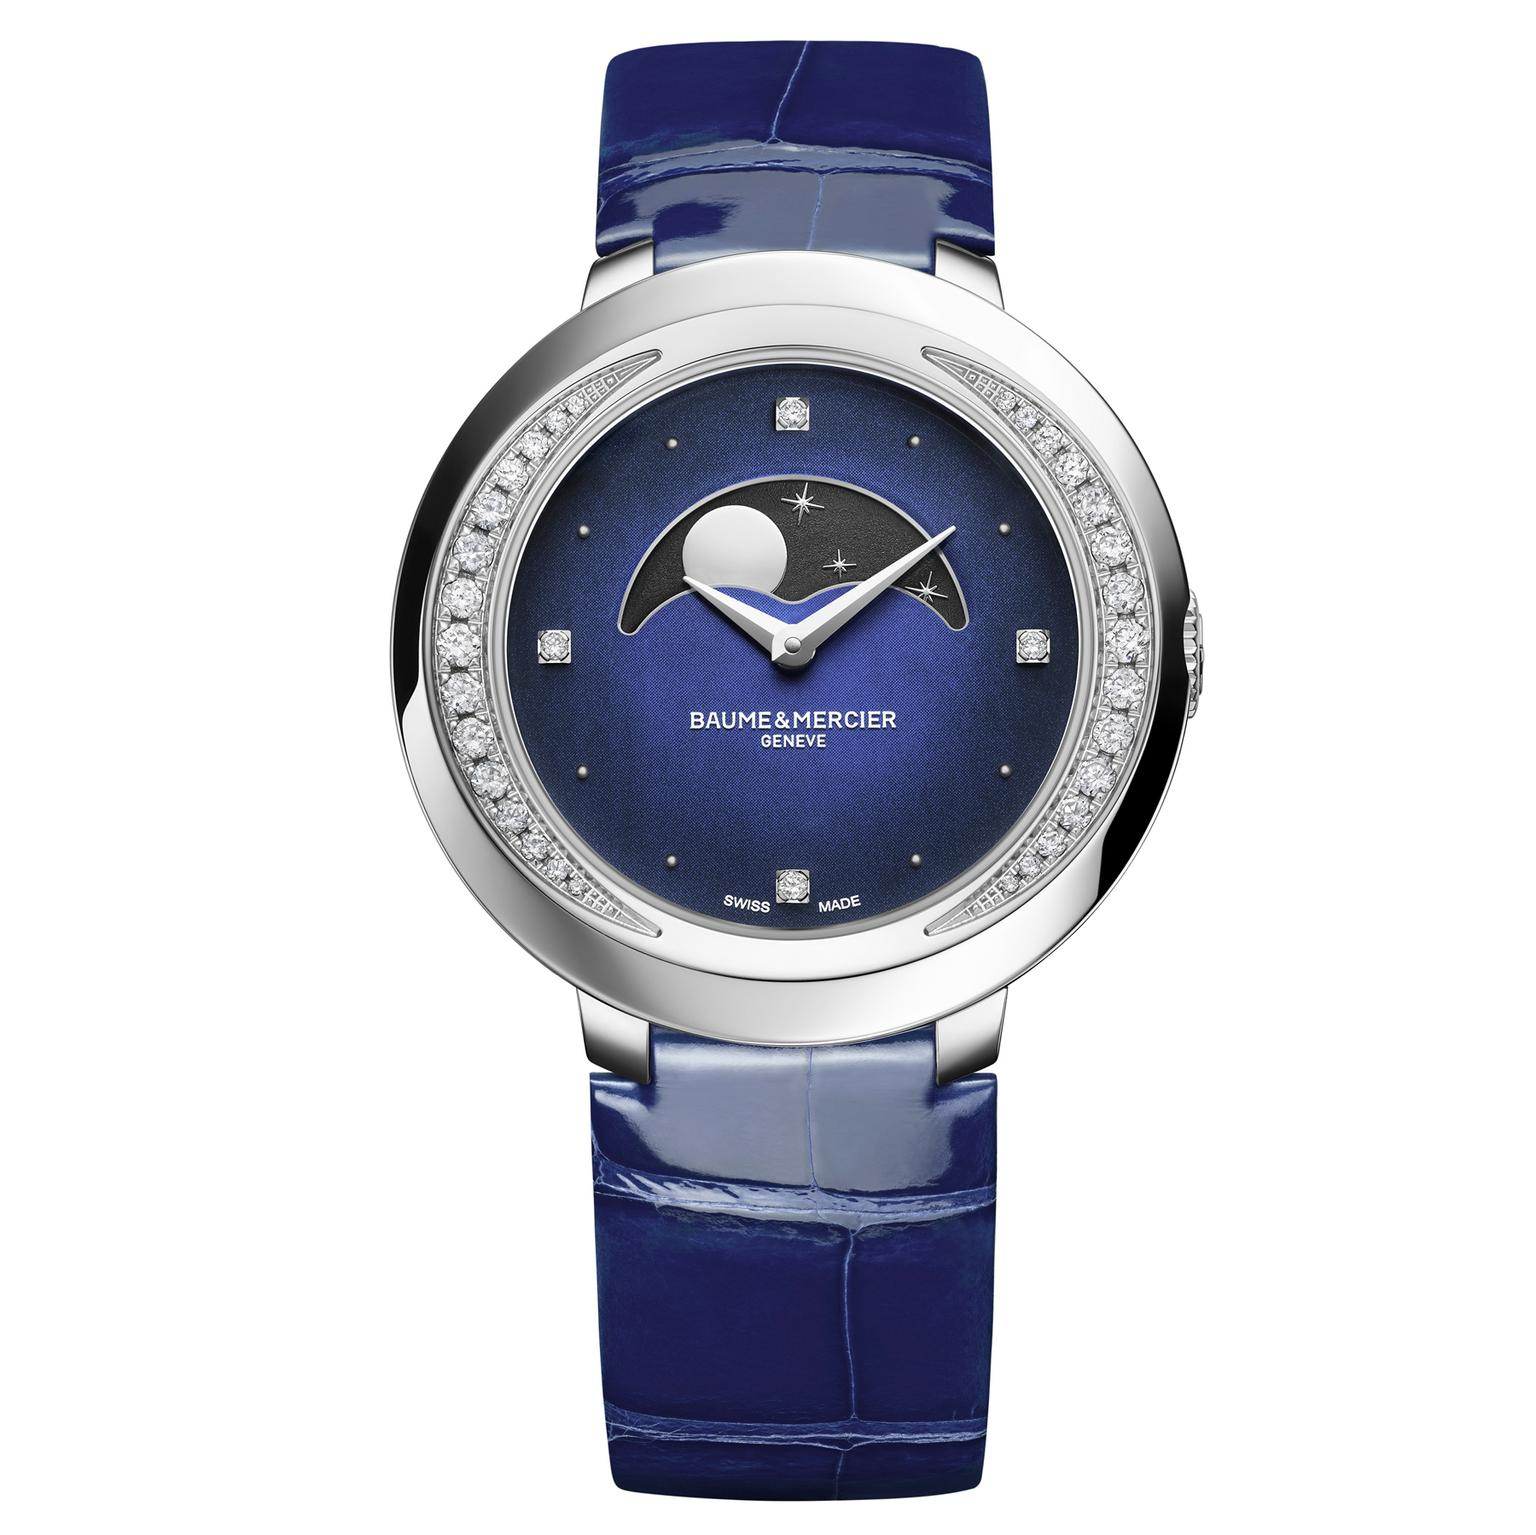 Baume & Mercier Promesse Moon Phase watch